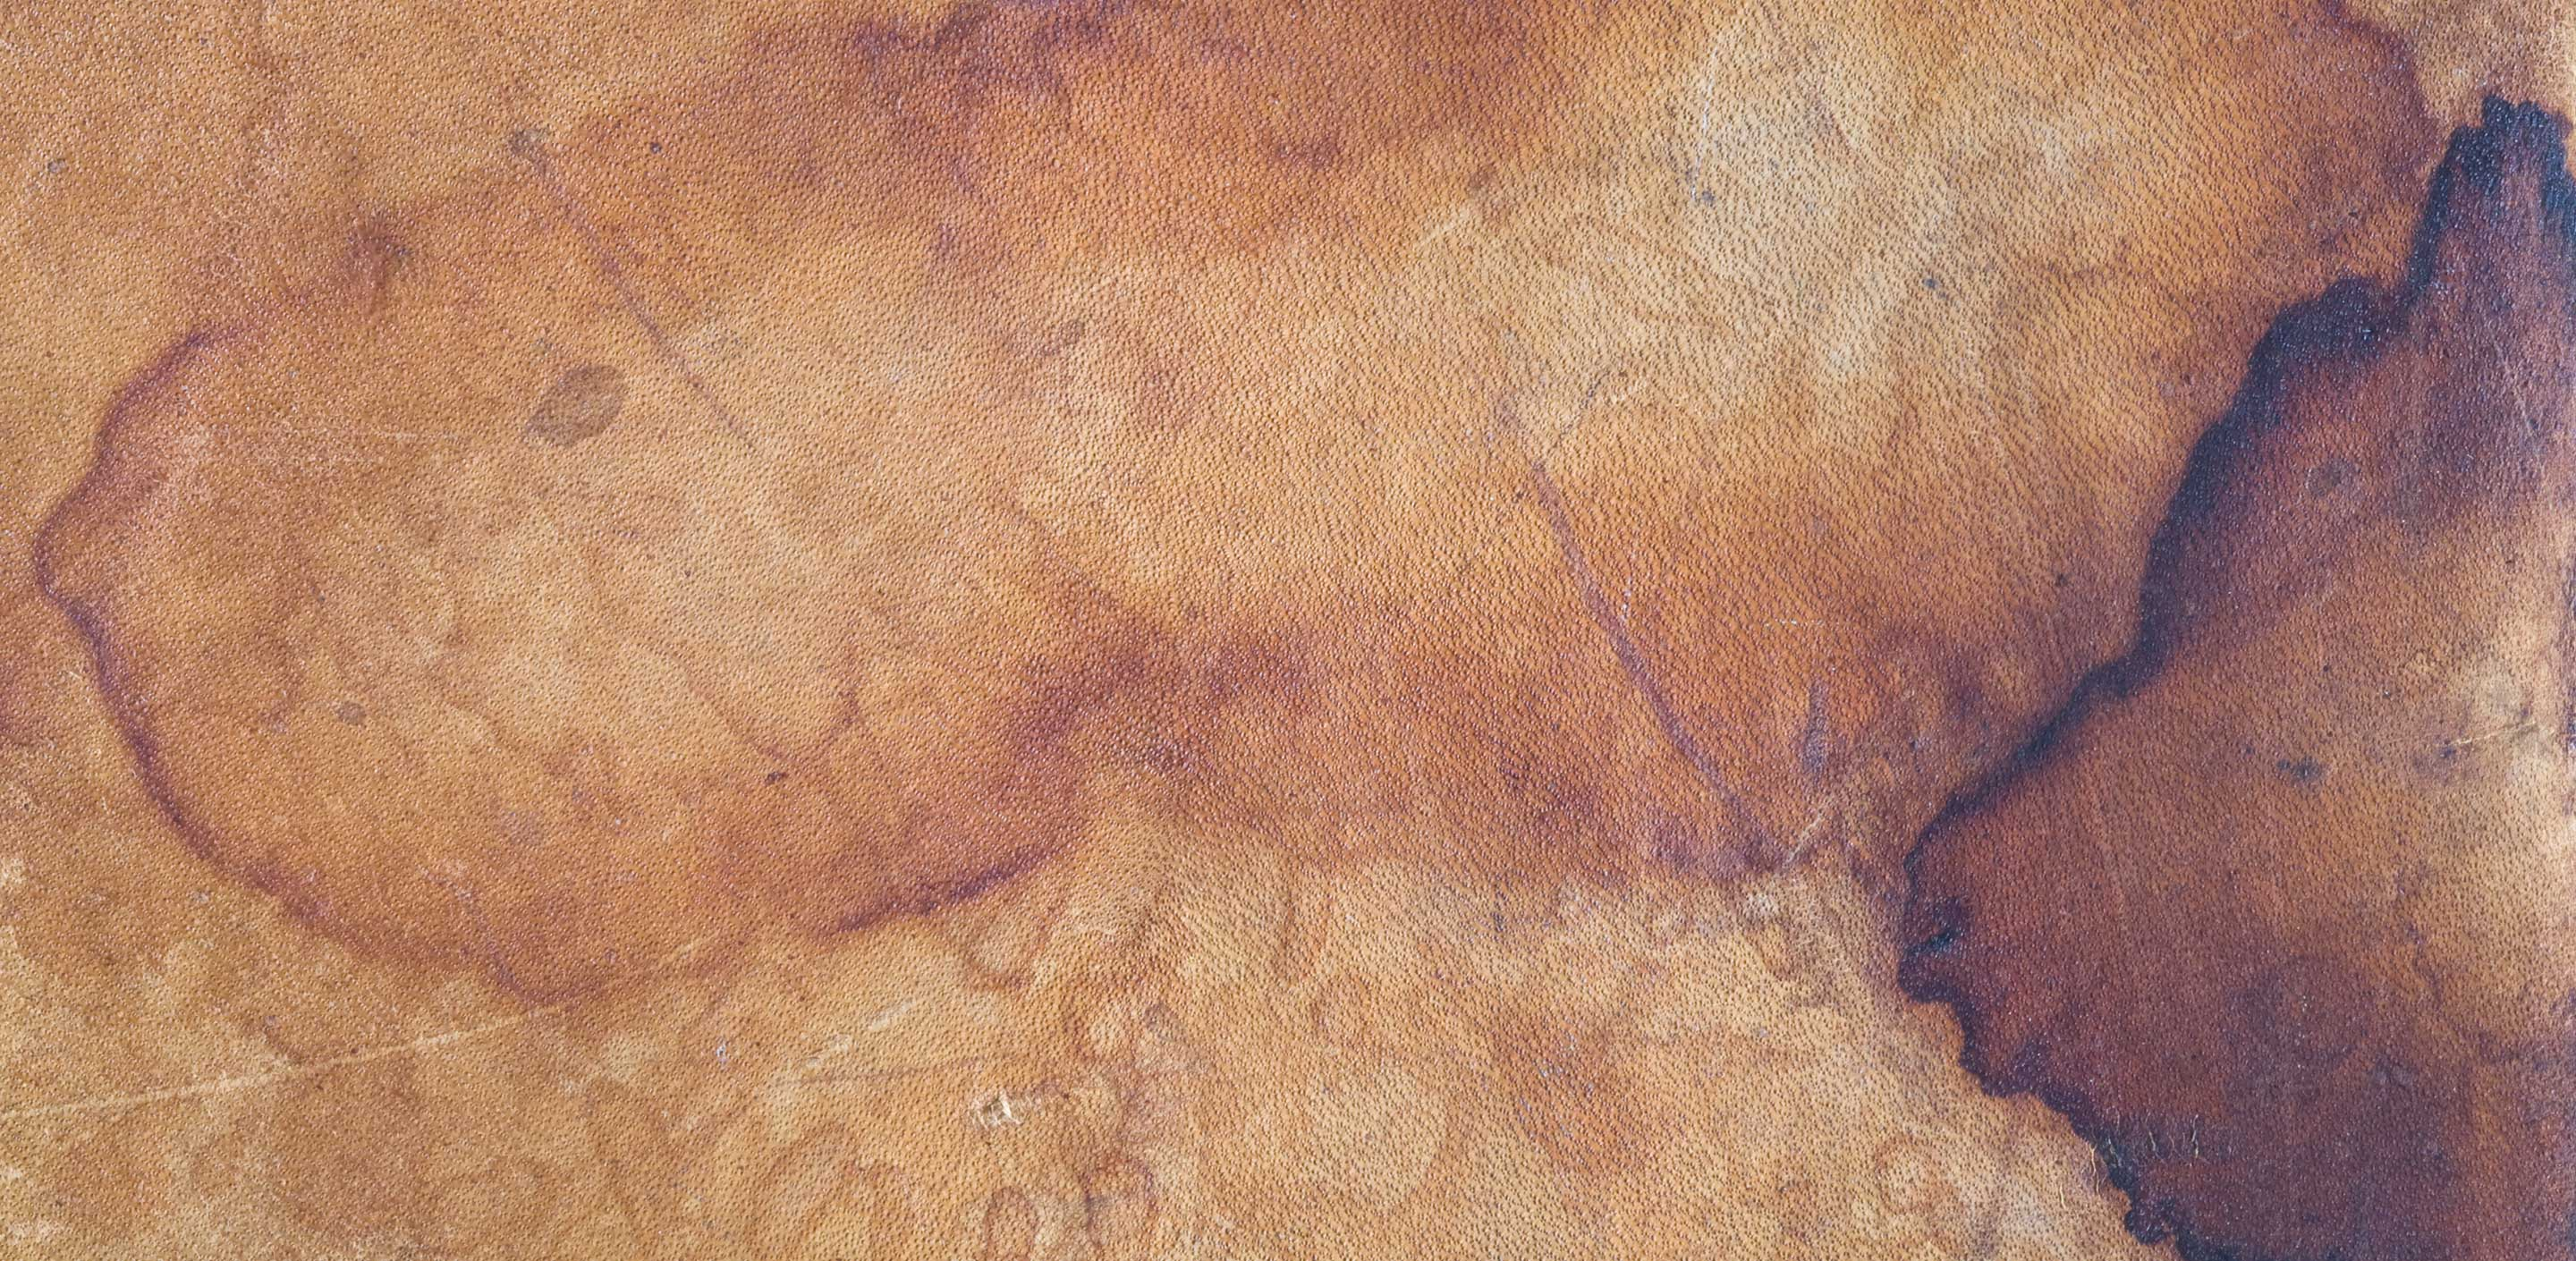 How To Remove Ink From Leather?